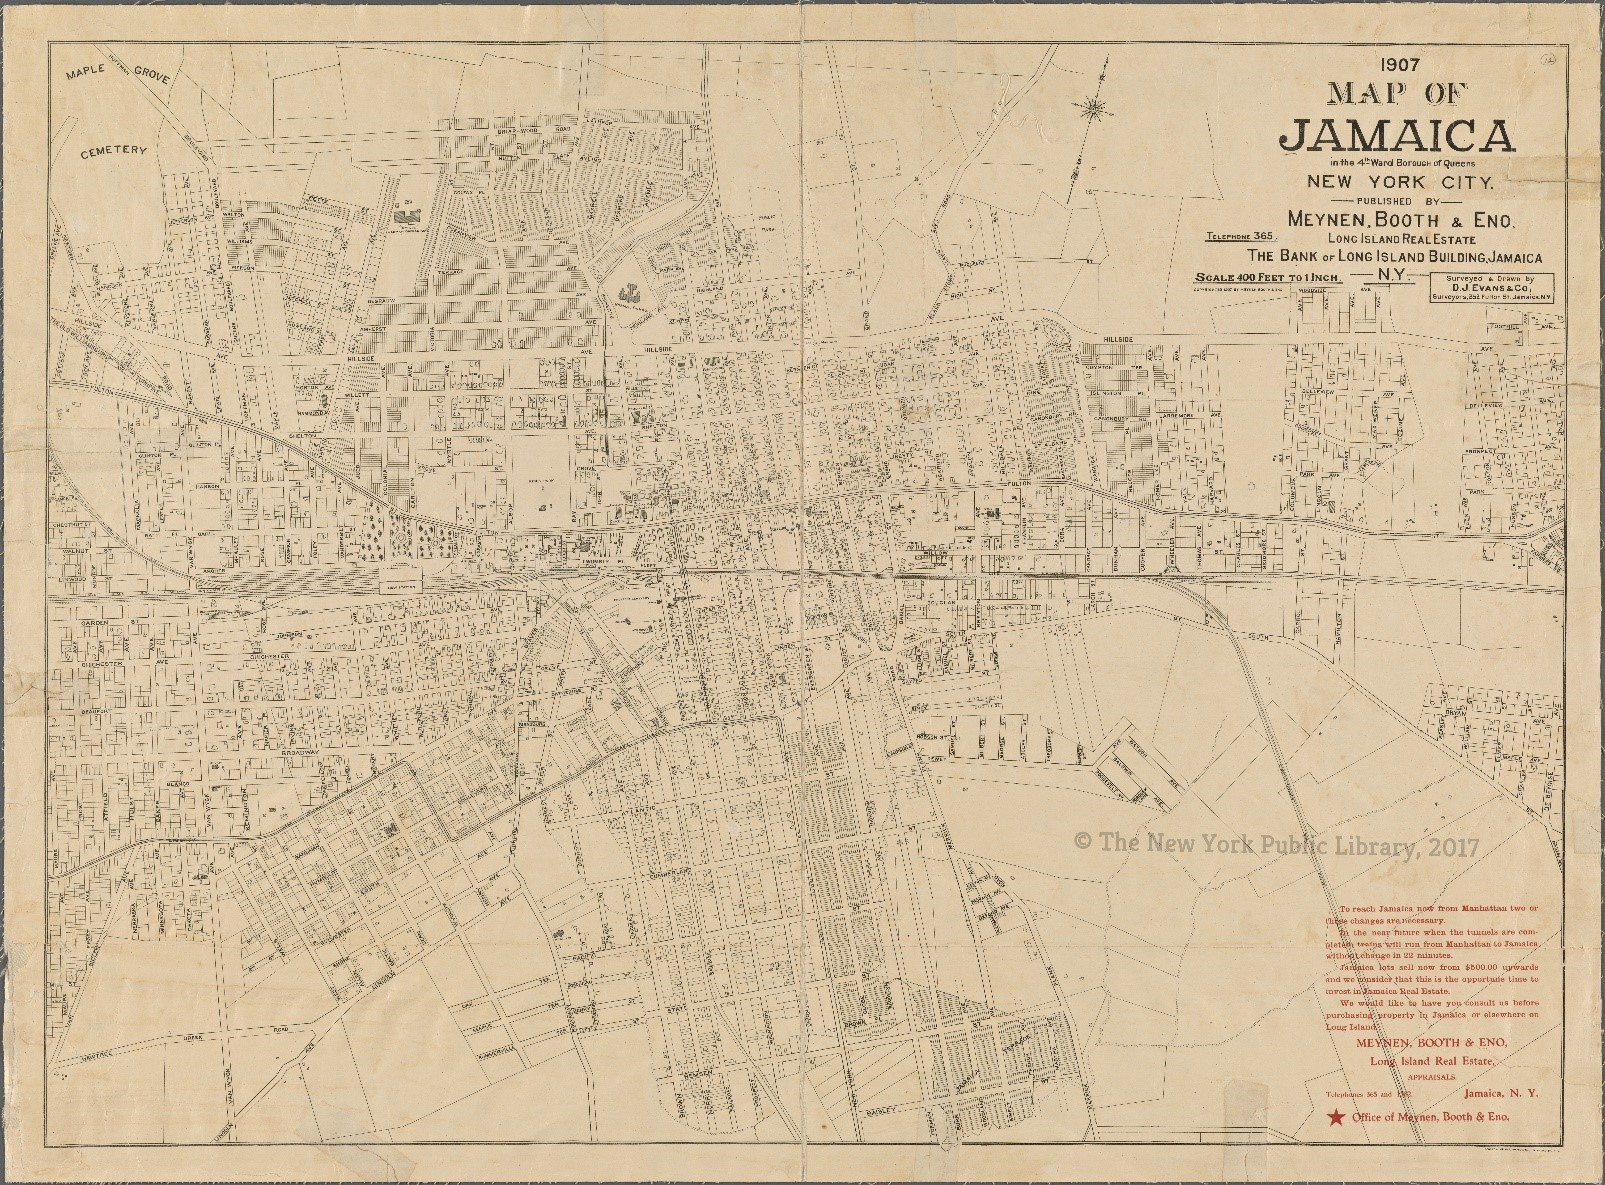 Queens | on map of tillson ny, map of paul smiths ny, map of jackson ny, map of appleton ny, map of north river ny, map of south otselic ny, map of strykersville ny, map of nelson ny, map of le roy ny, map of south colton ny, map of tioga ny, map of kingsbury ny, map of kent ny, map of winthrop ny, map of glenfield ny, map of dickinson ny, map of afton ny, map of pine island ny, map of vernon center ny, map of scipio center ny,